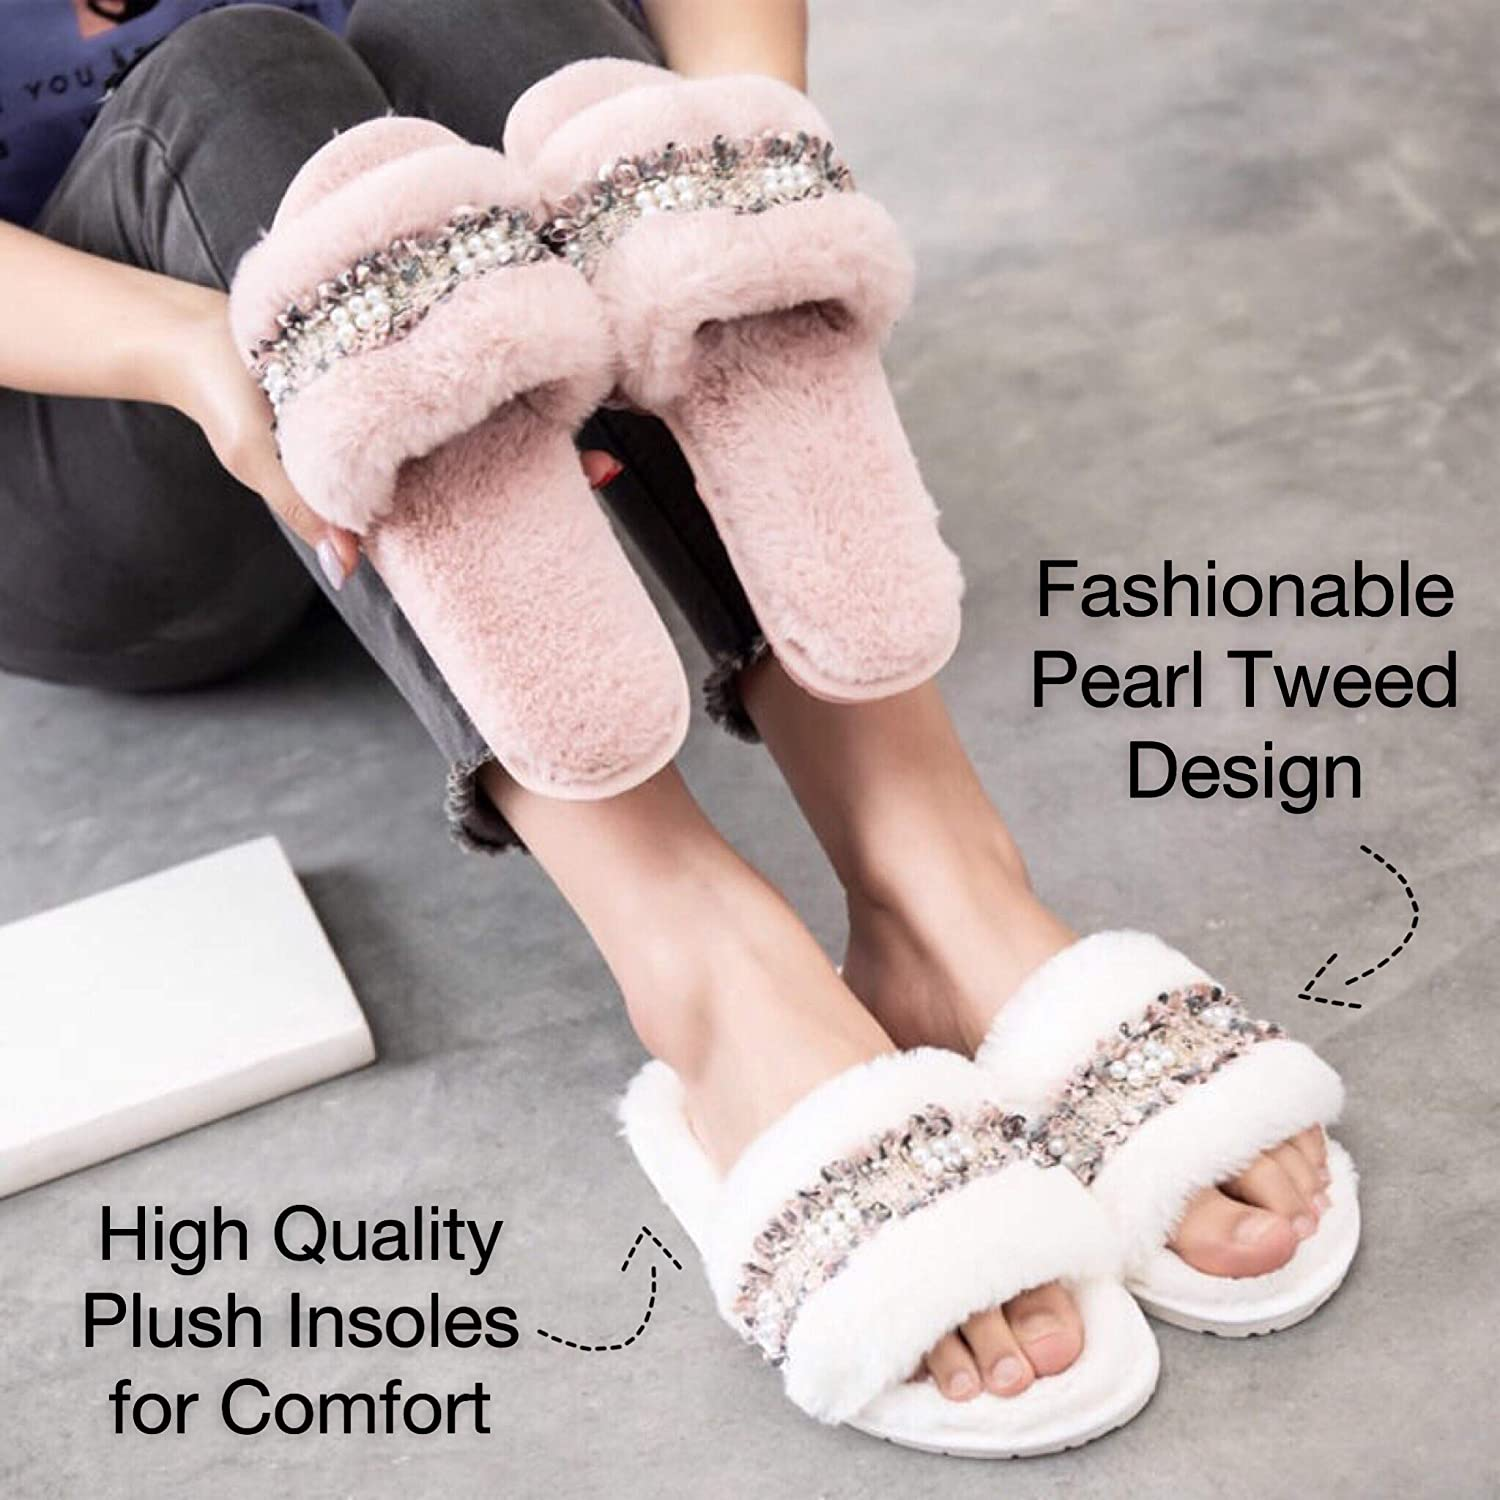 Serene Lunar Women's Plush|Fluffy | Fuzzy Slippers| with Pearl Tweed Design